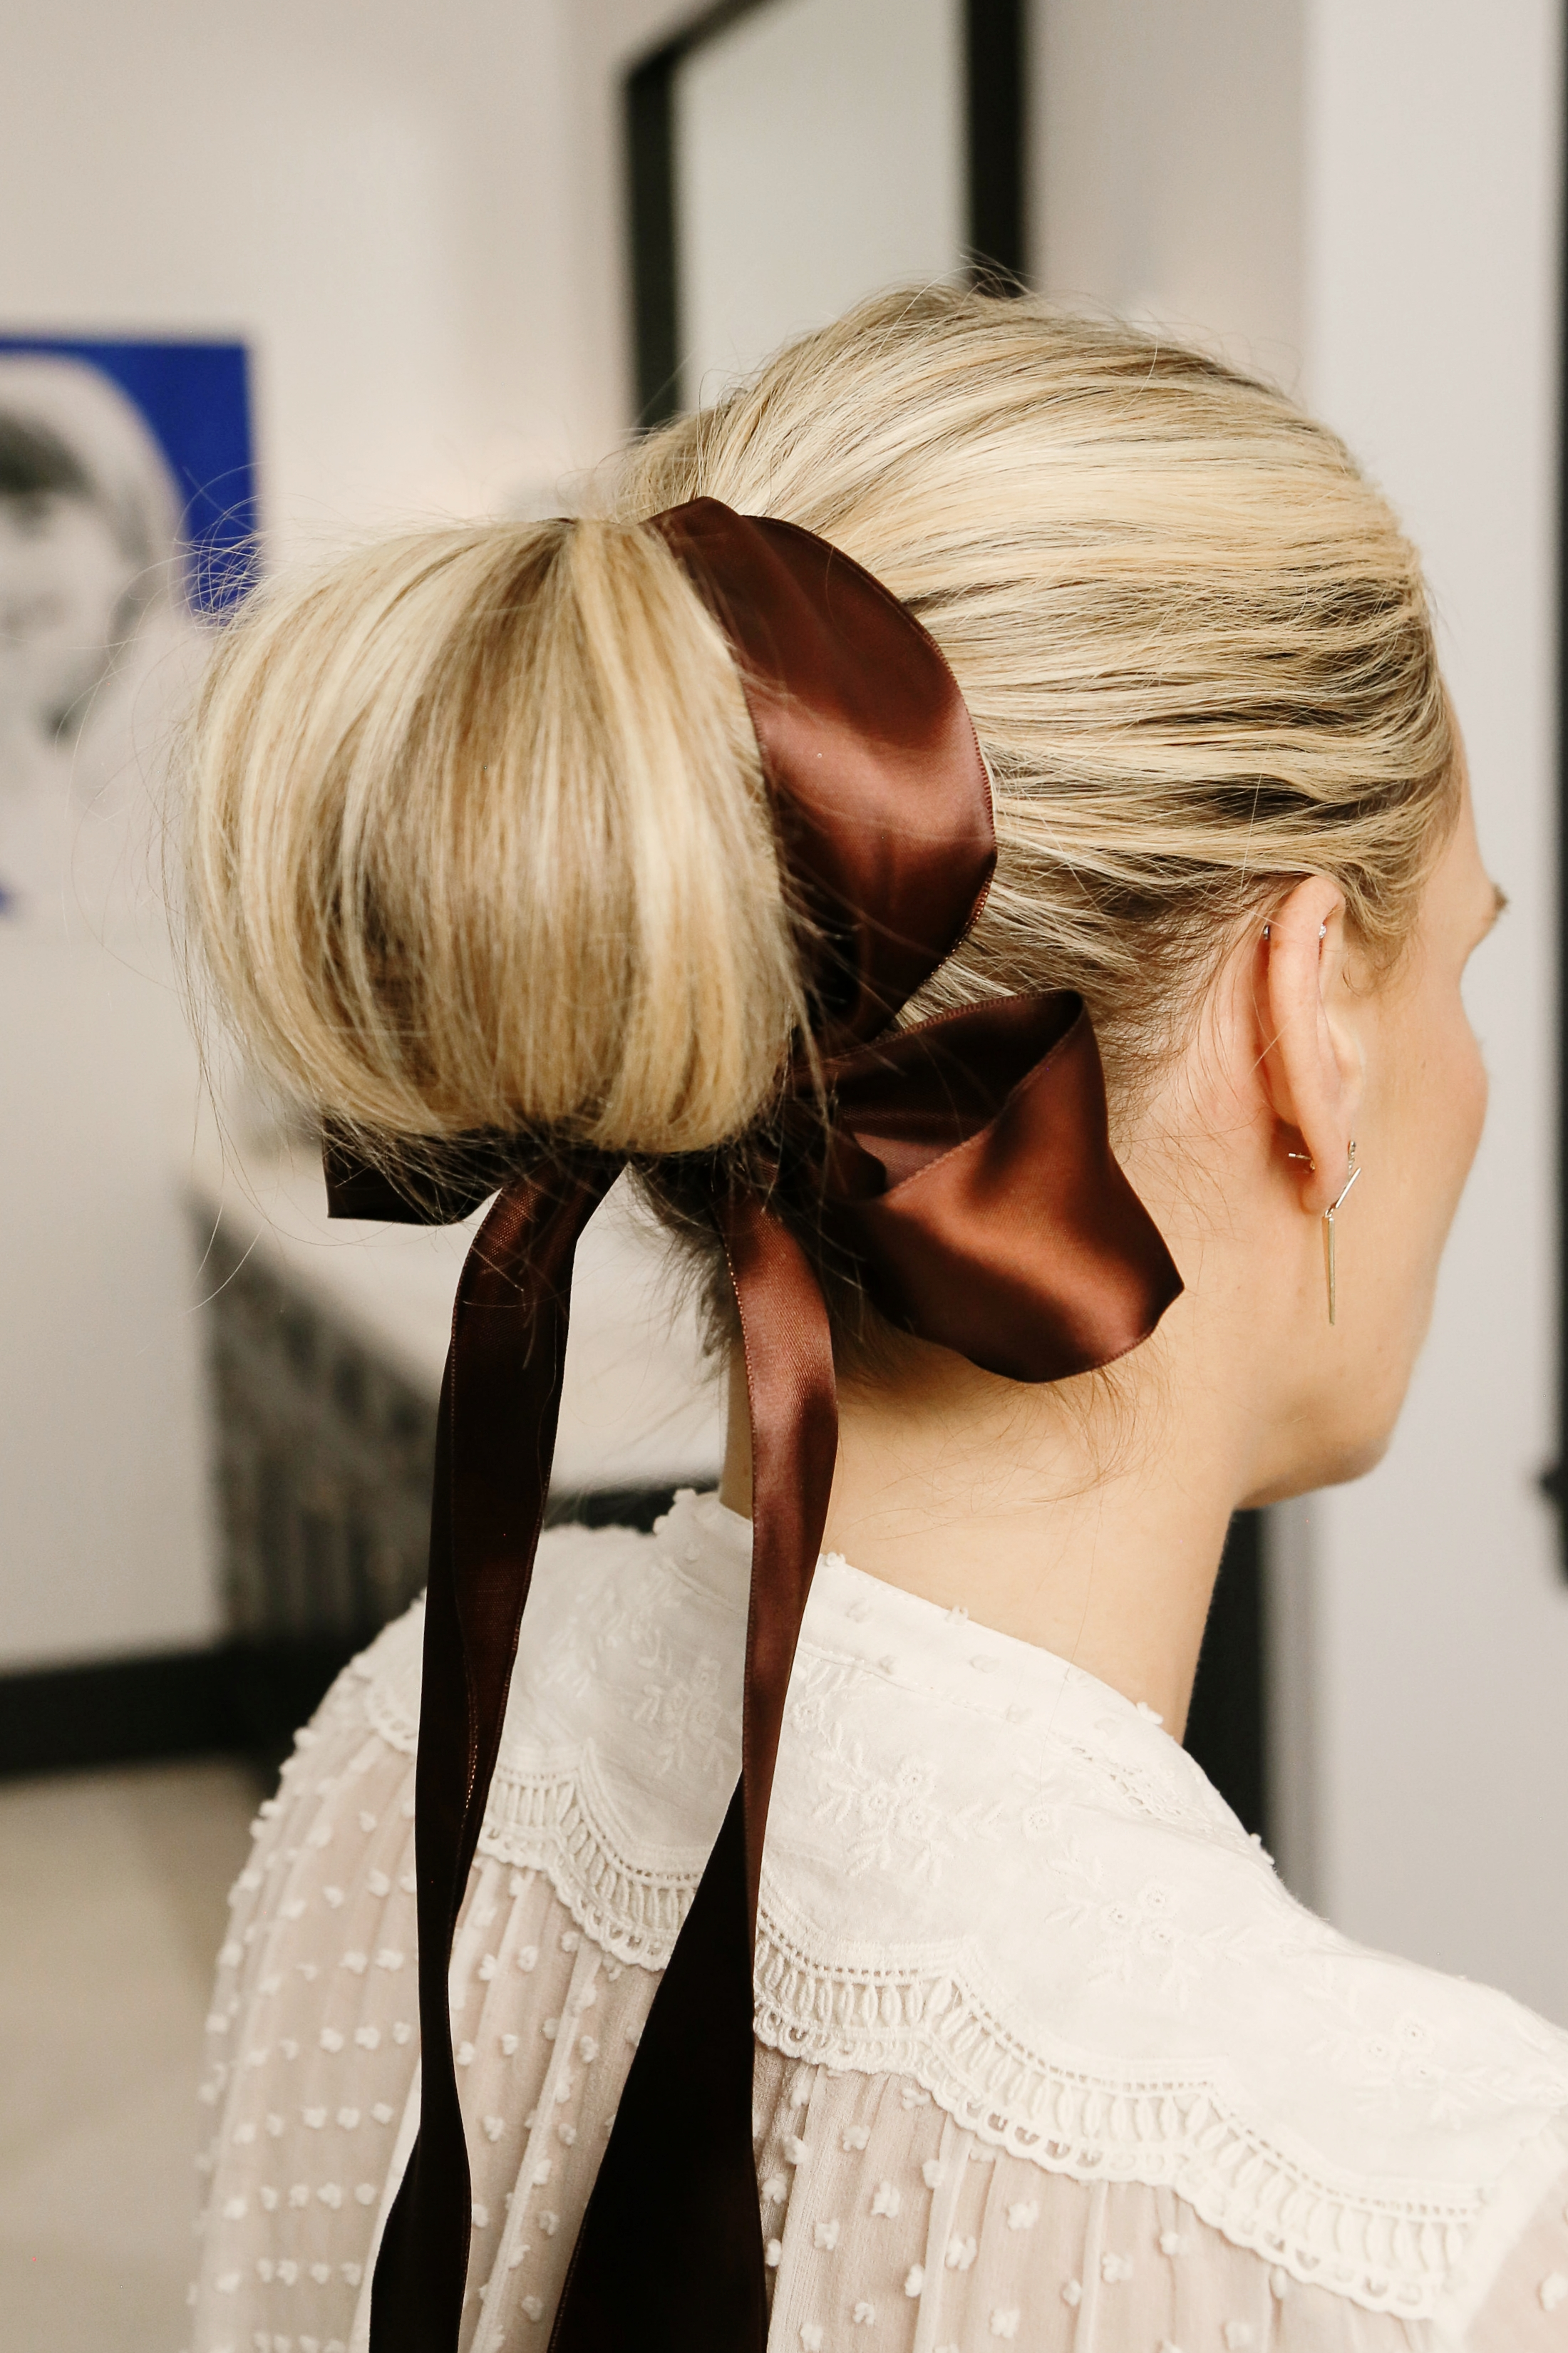 Molly Sims Fall 2017 Trending Hair Bow Youtube Tutorial - photo by Erica Hampton